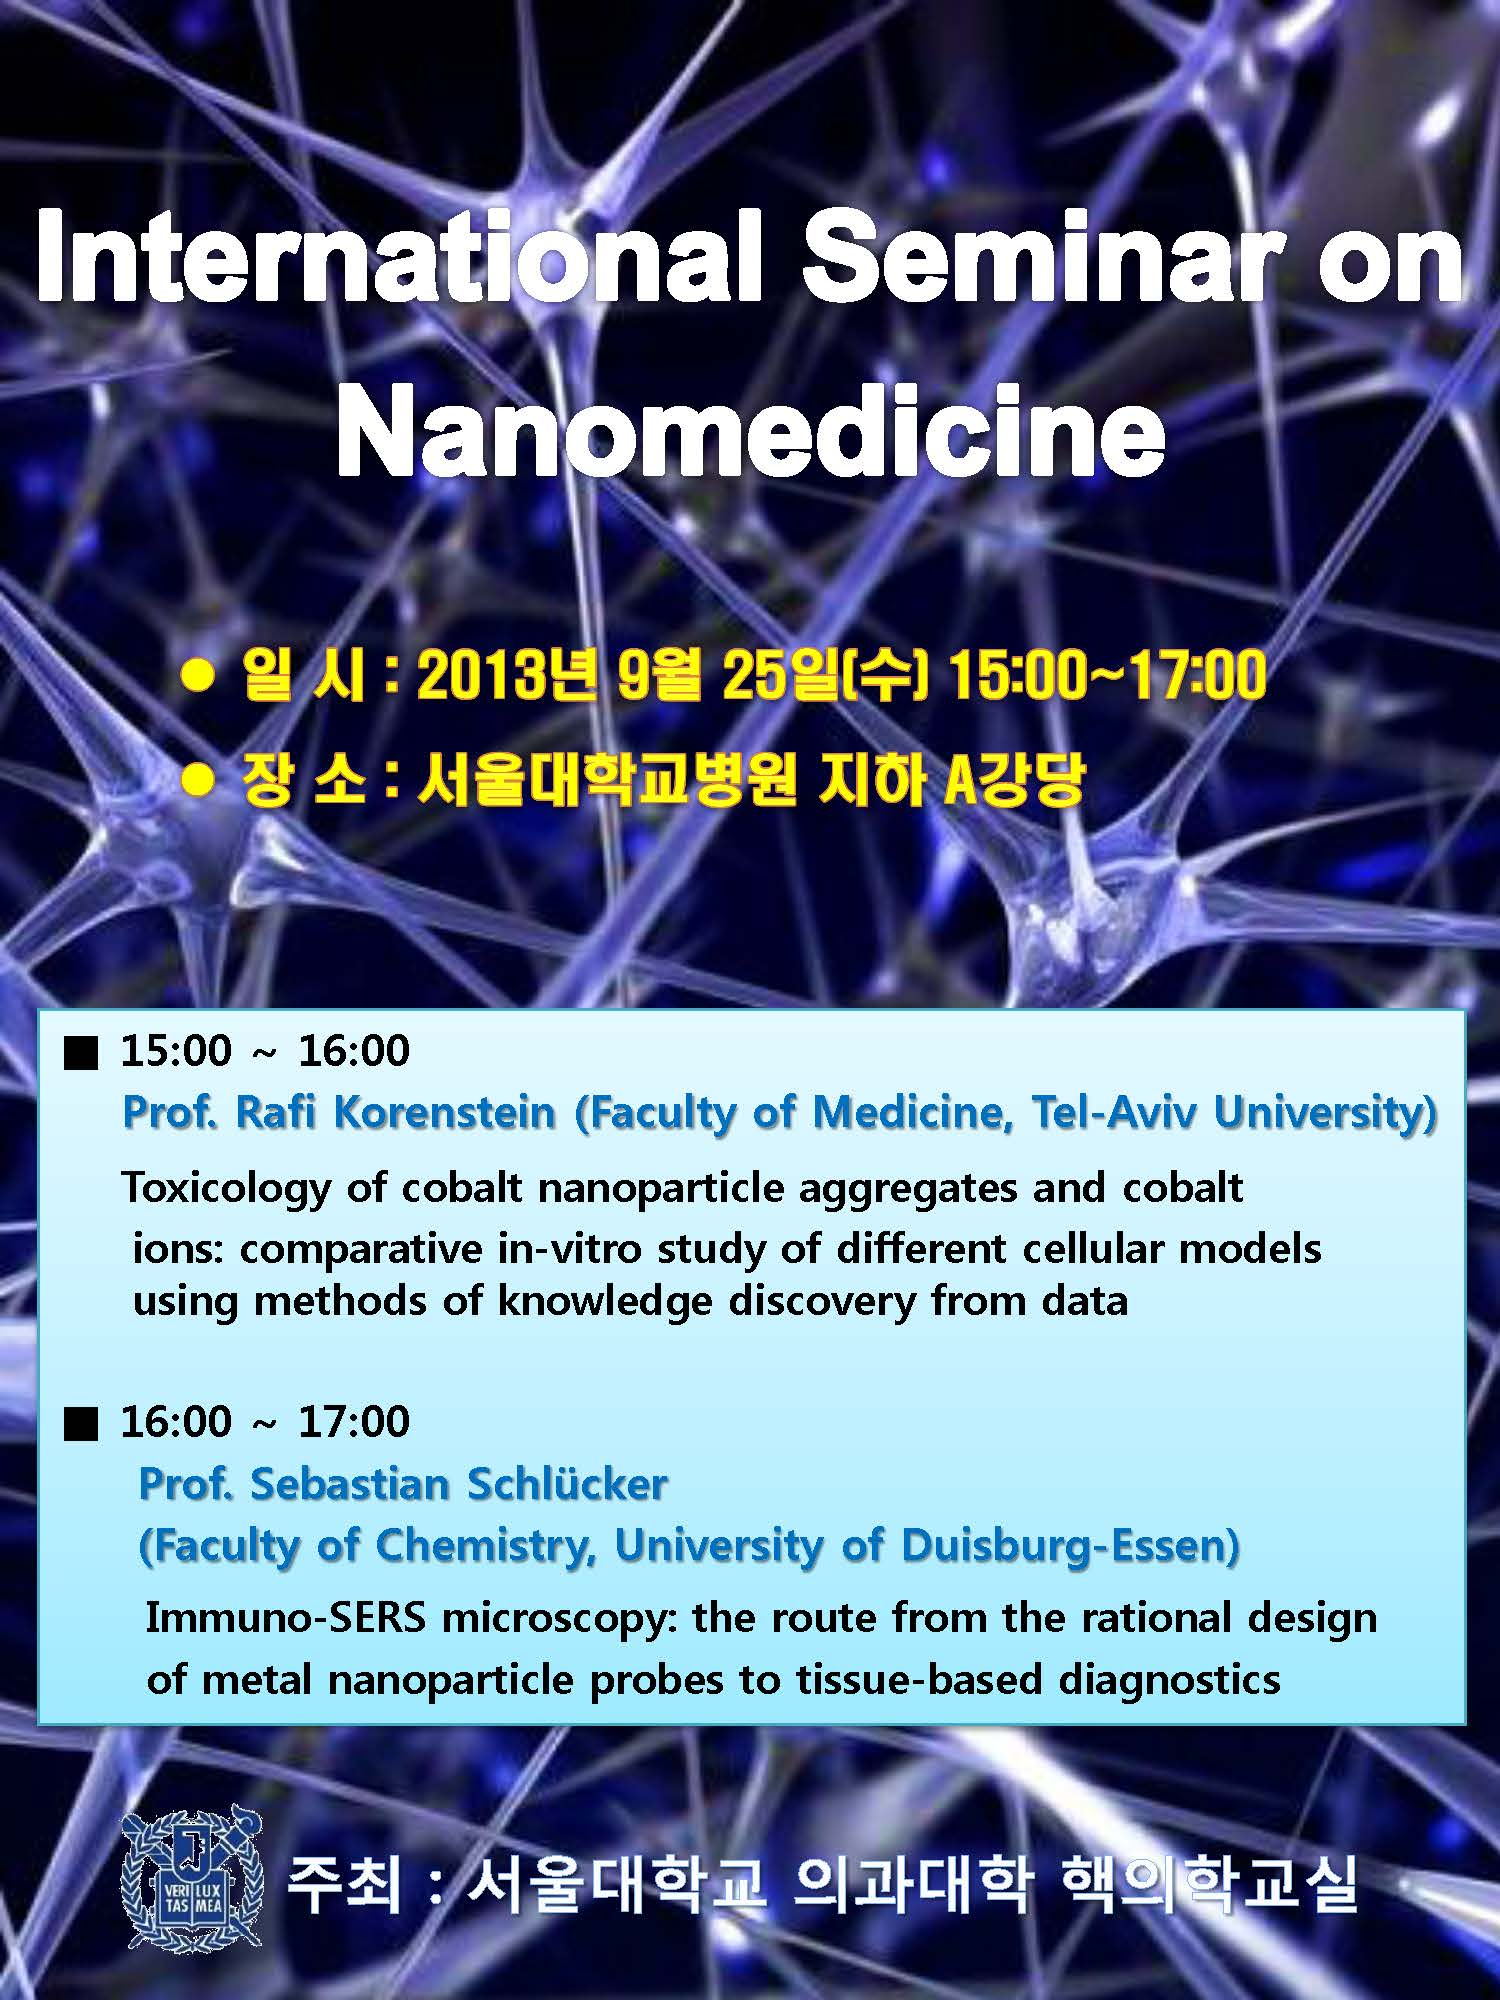 Internation seminar on nanomedicine포스터(09.25).jpg